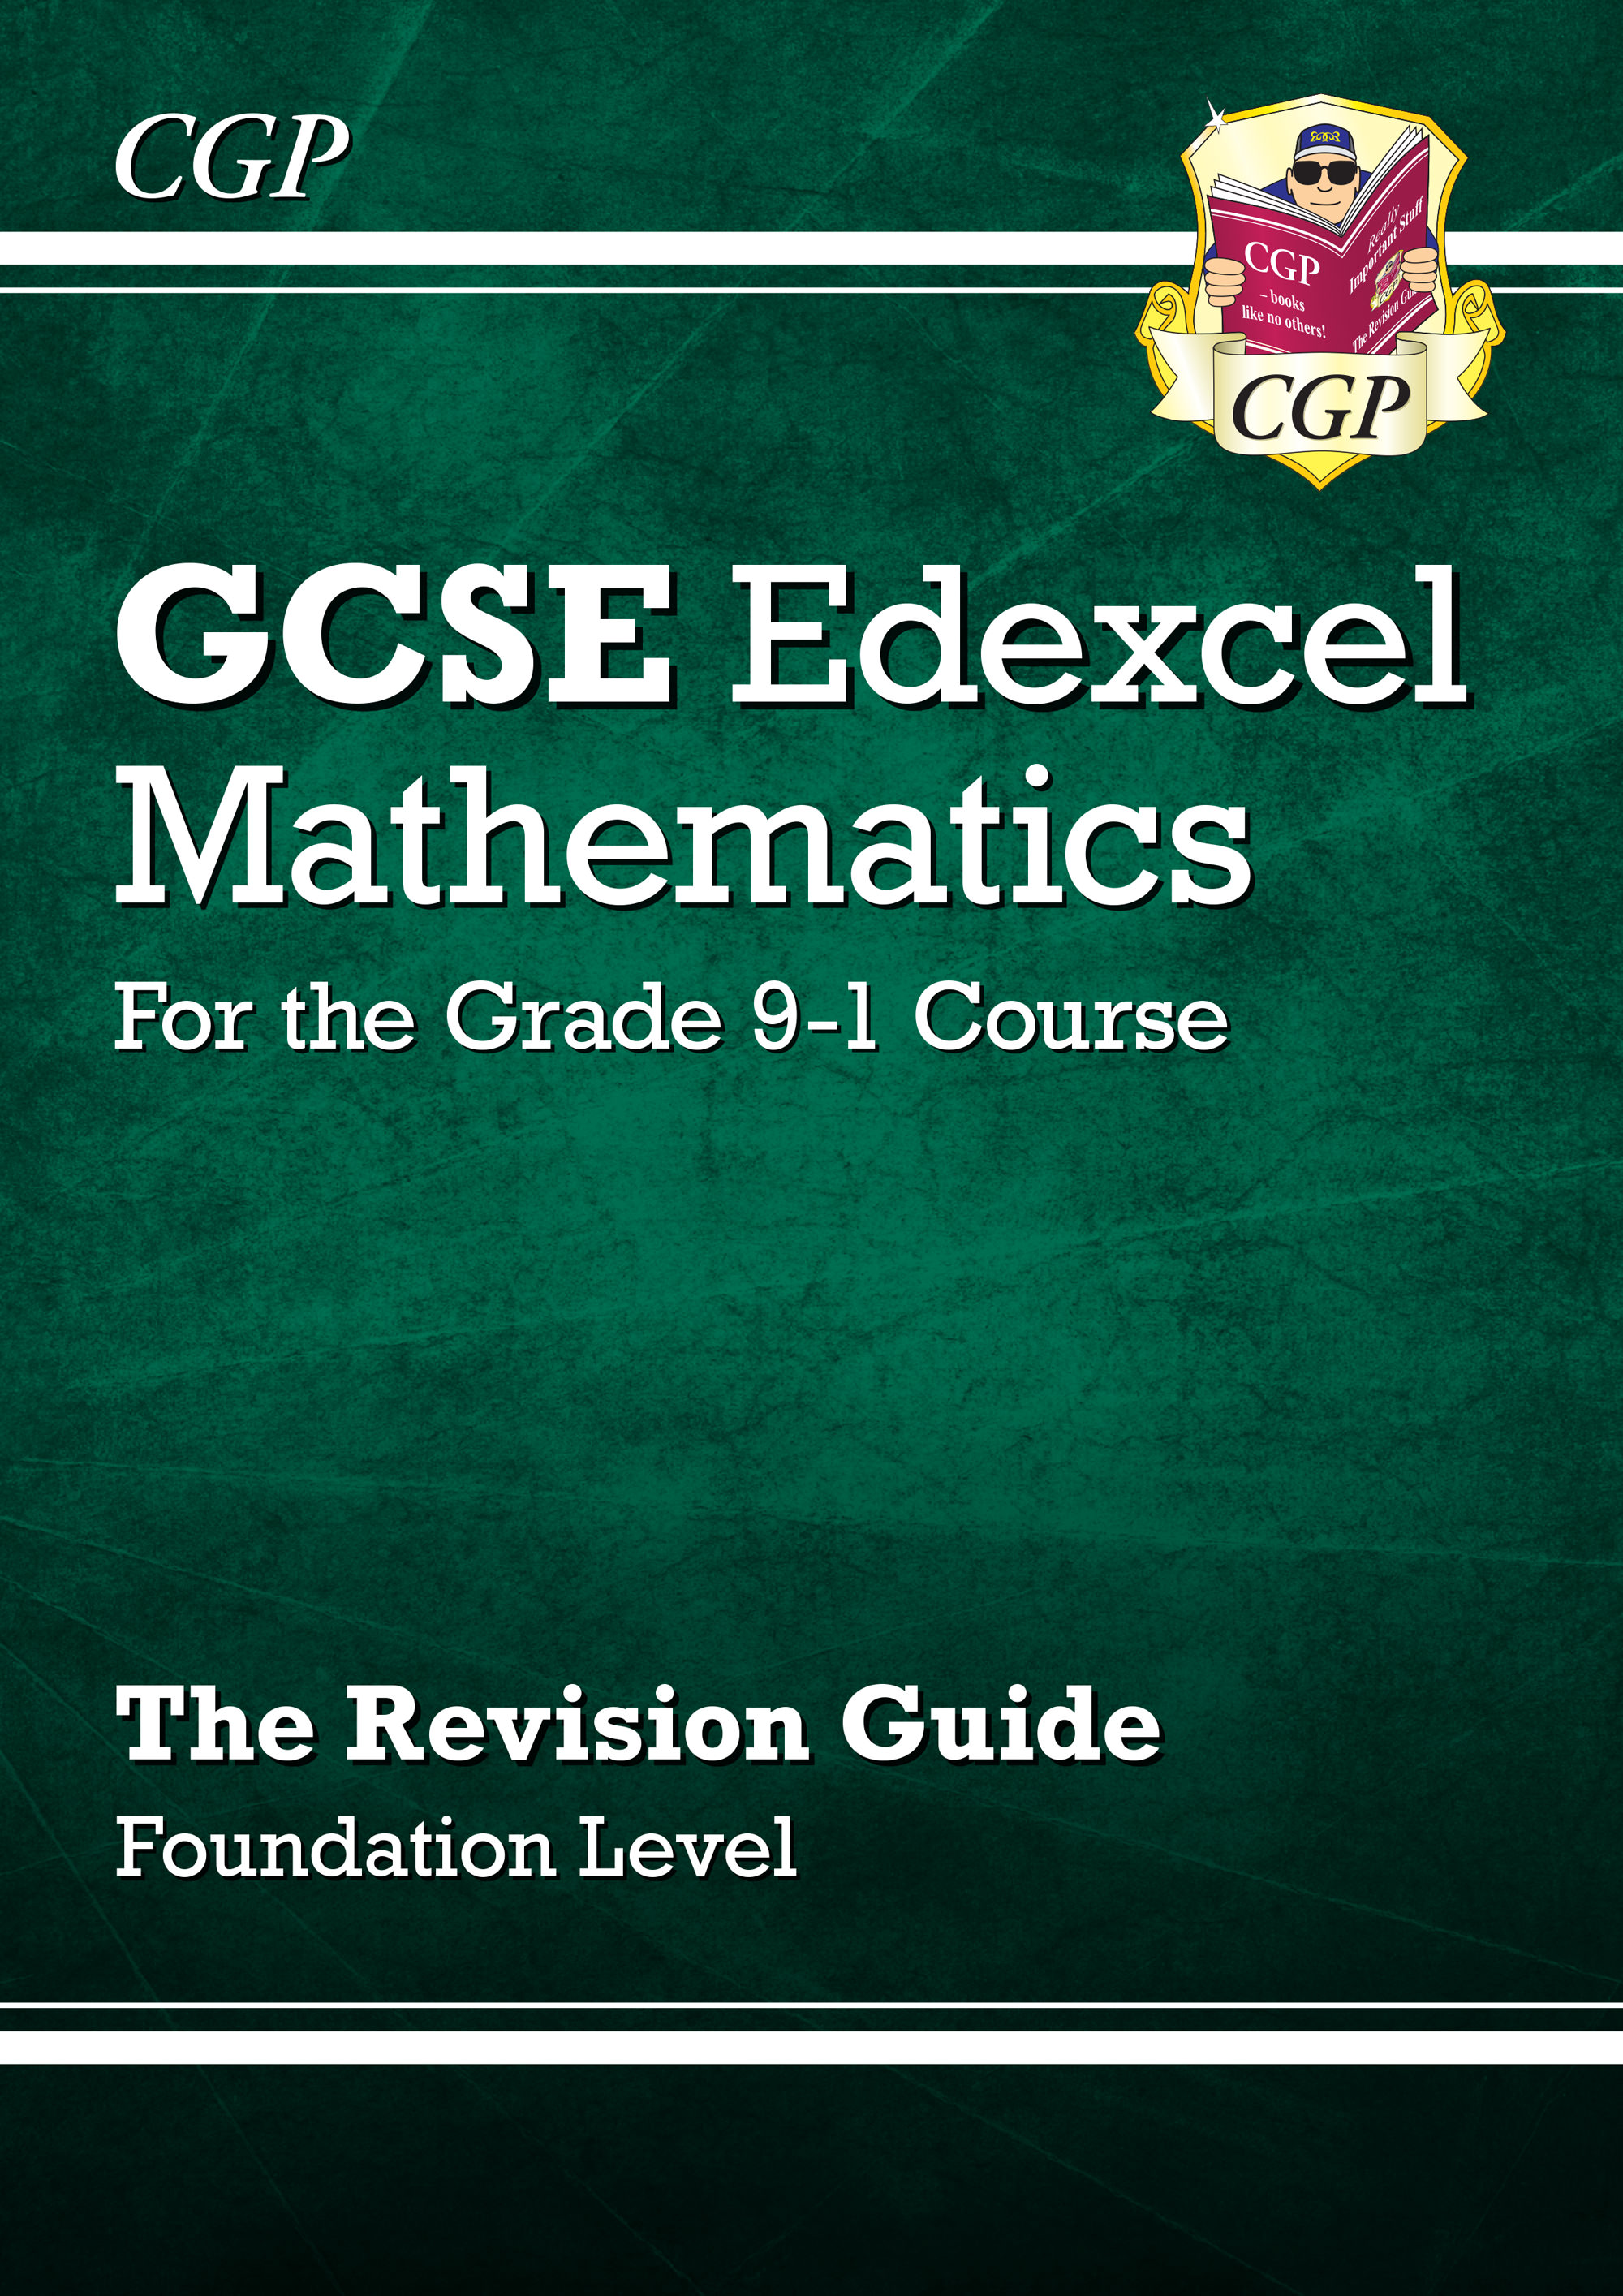 MXFR46D - GCSE Maths Edexcel Revision Guide: Foundation - for the Grade 9-1 Course (Online Edition)